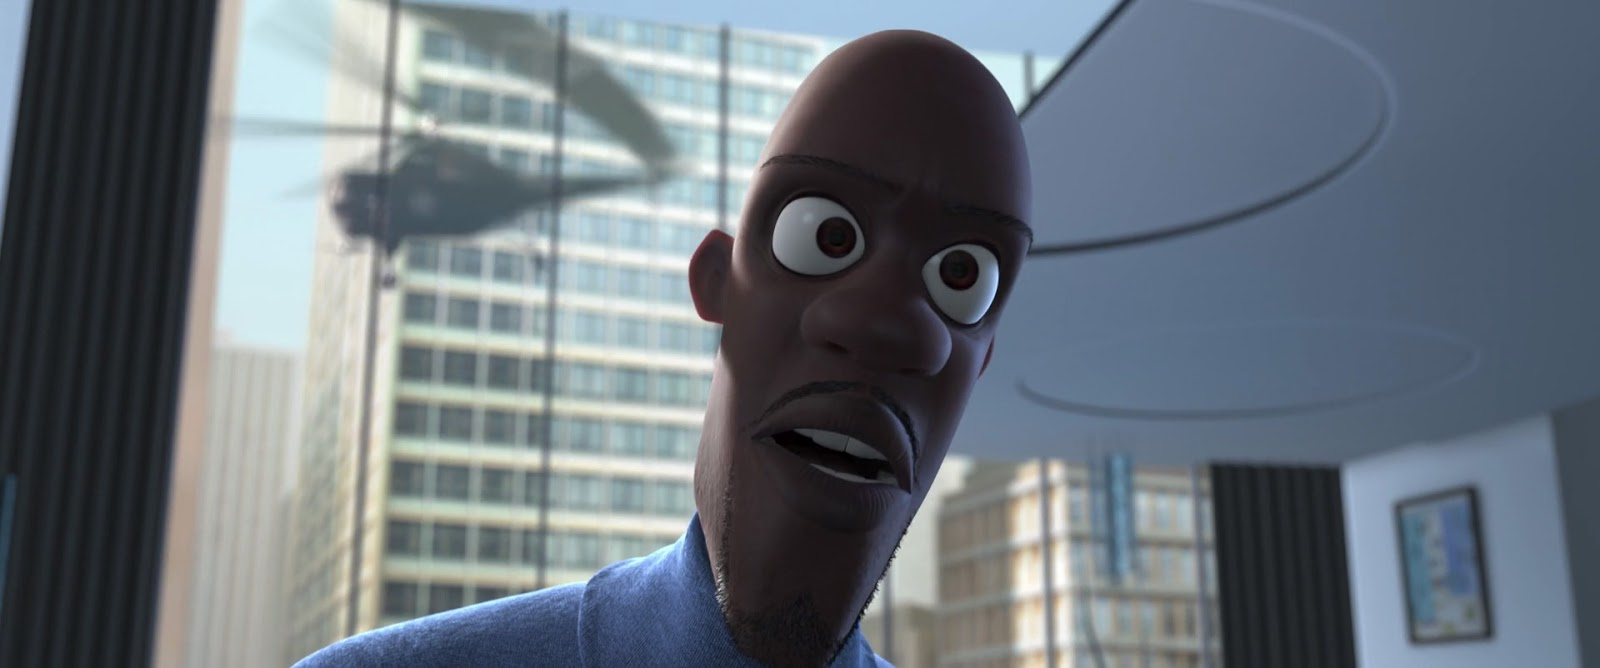 Samuel L. Jackson Acts Out His Most Memorable Film Lines - Including Frozone From 'The Incredibles' | Pixar Post